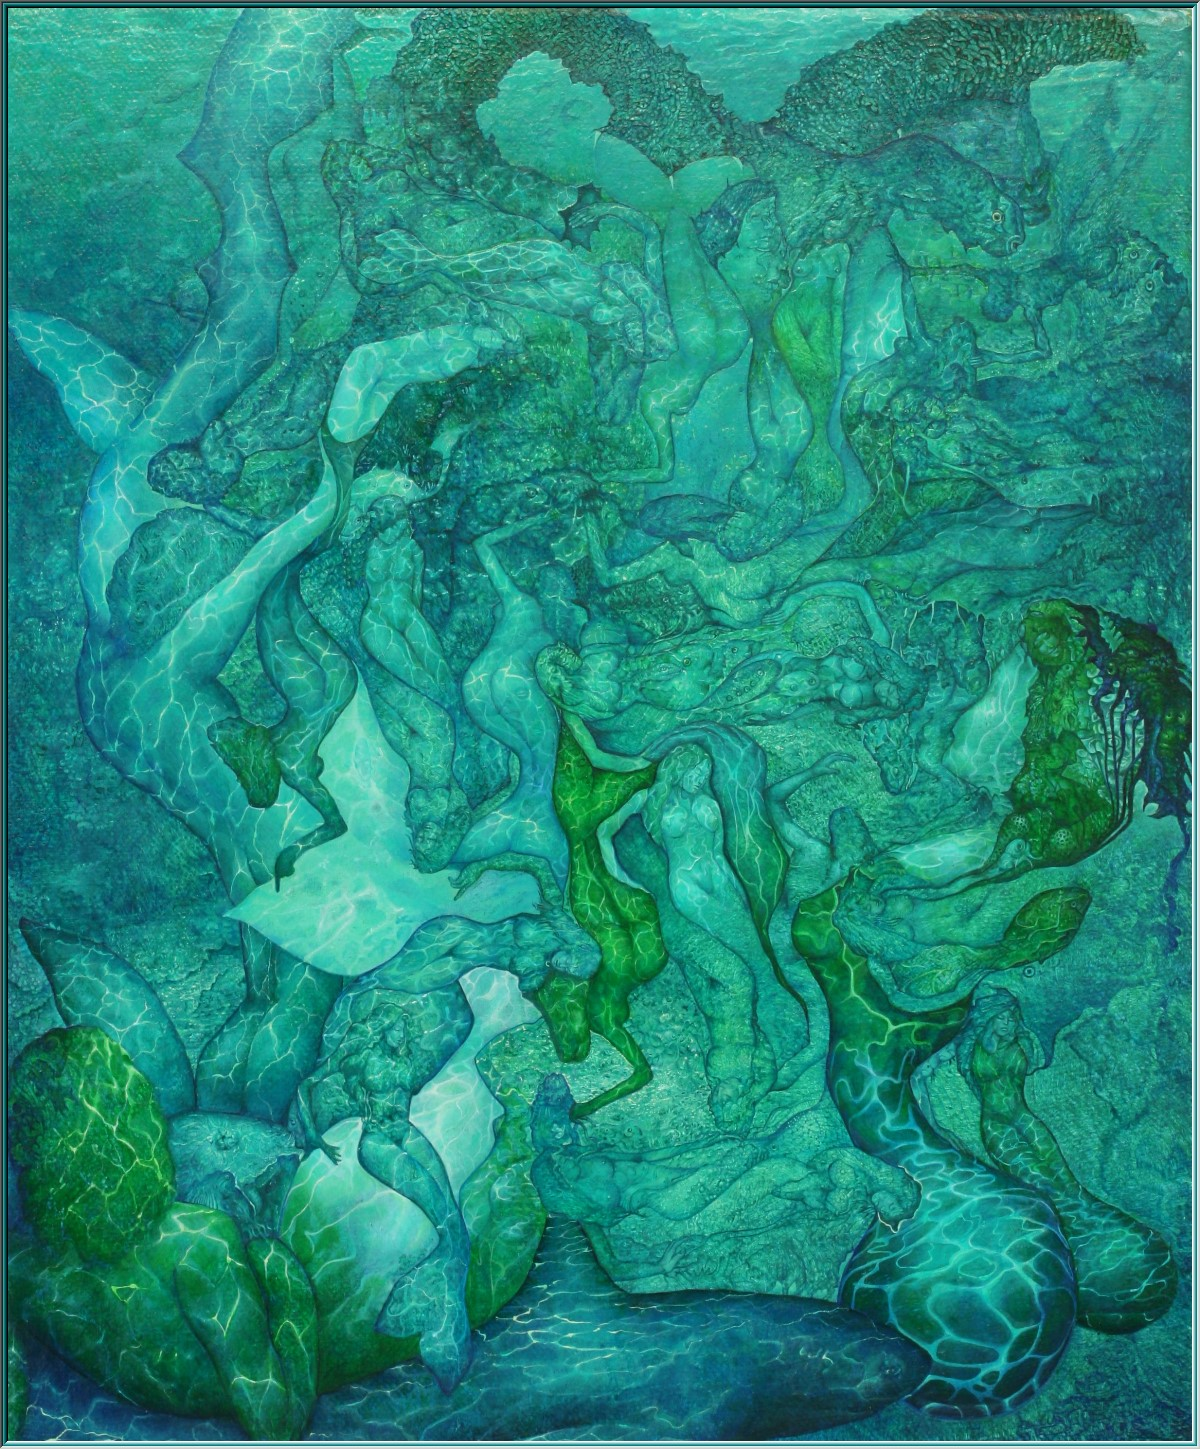 nude mermaids, fishwife, mermaids, merman, Nix, water-god, river man, oil painting,